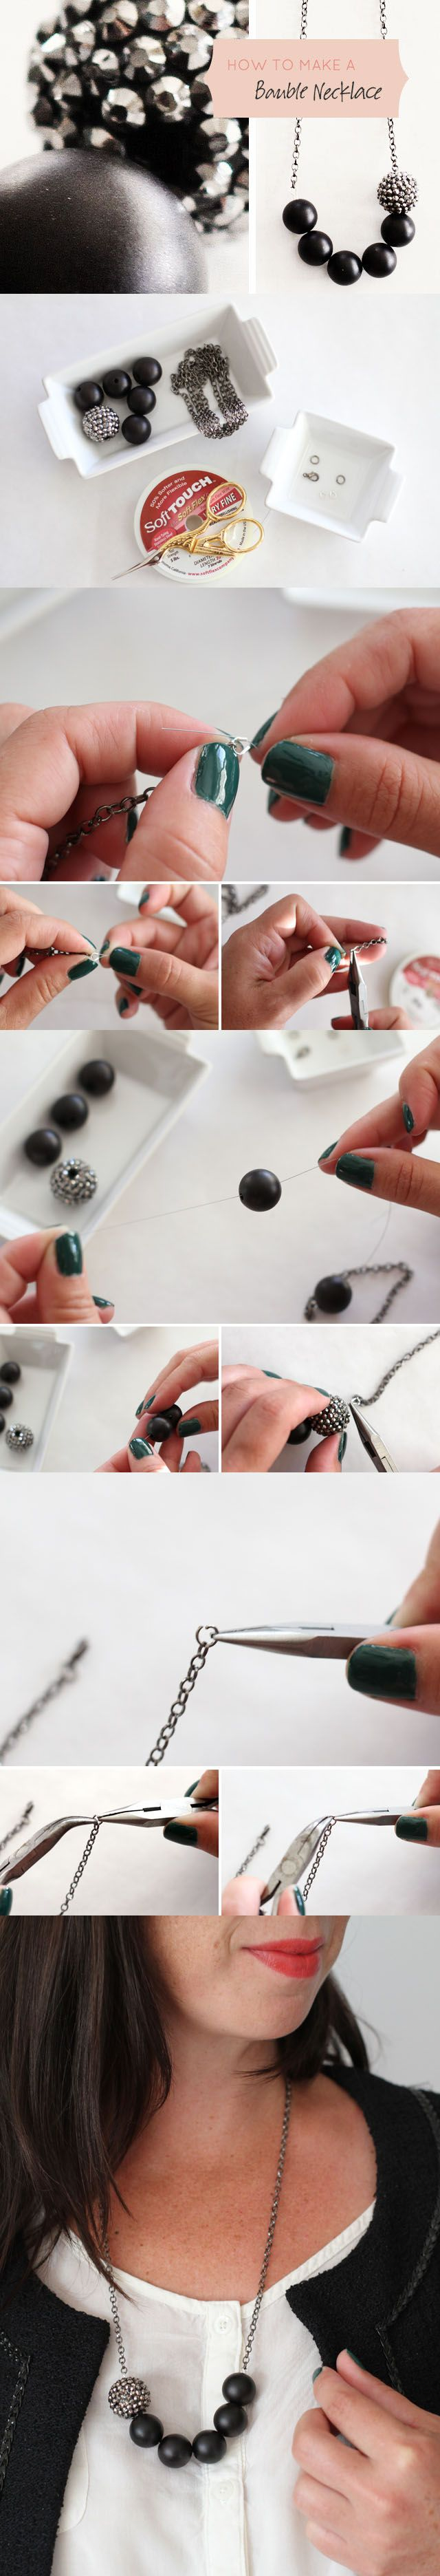 17 useful and pretty diy ideas for necklace diy the most beautiful necklace do it yourself ideas laura cook moreno can solutioingenieria Gallery